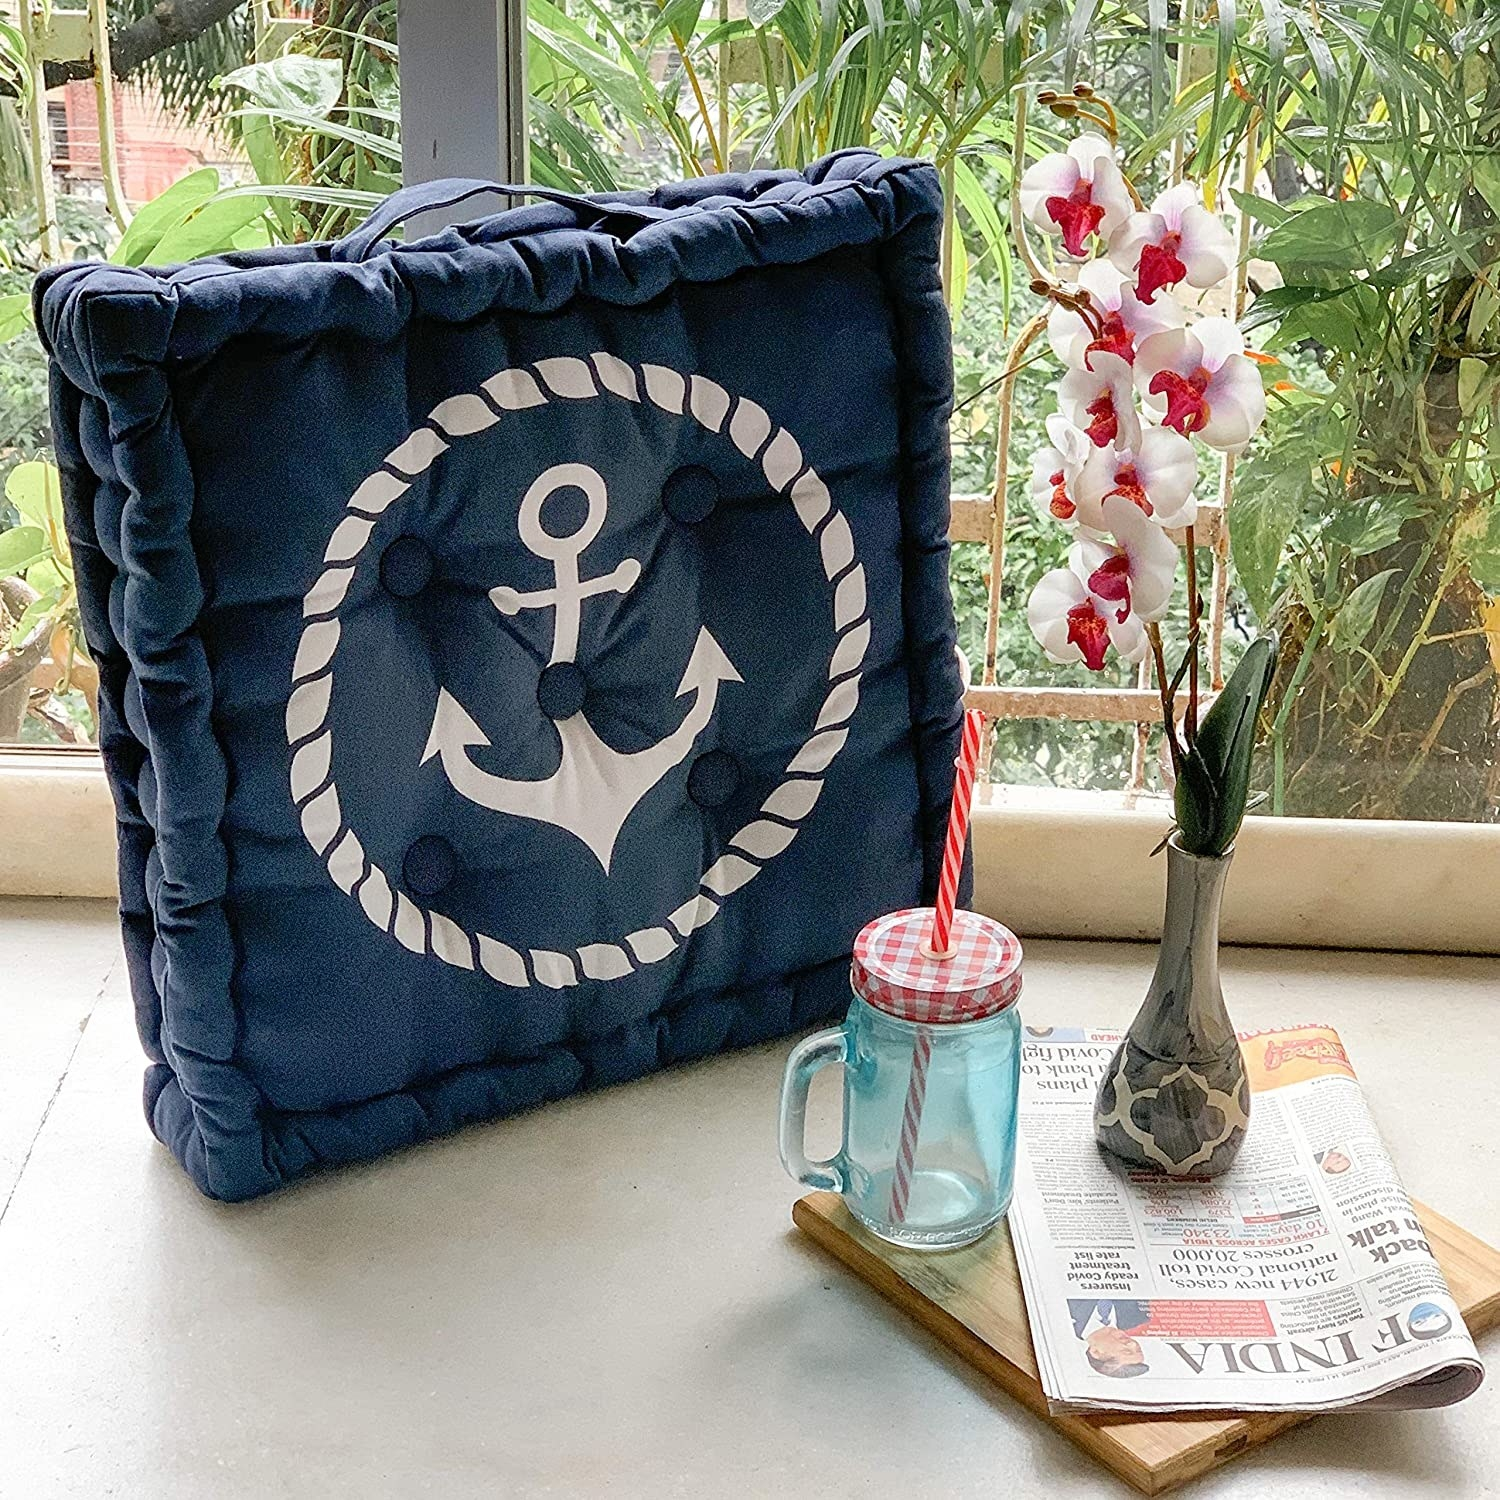 A blue anchor pillow next to a mason jar and a stack of newspapers